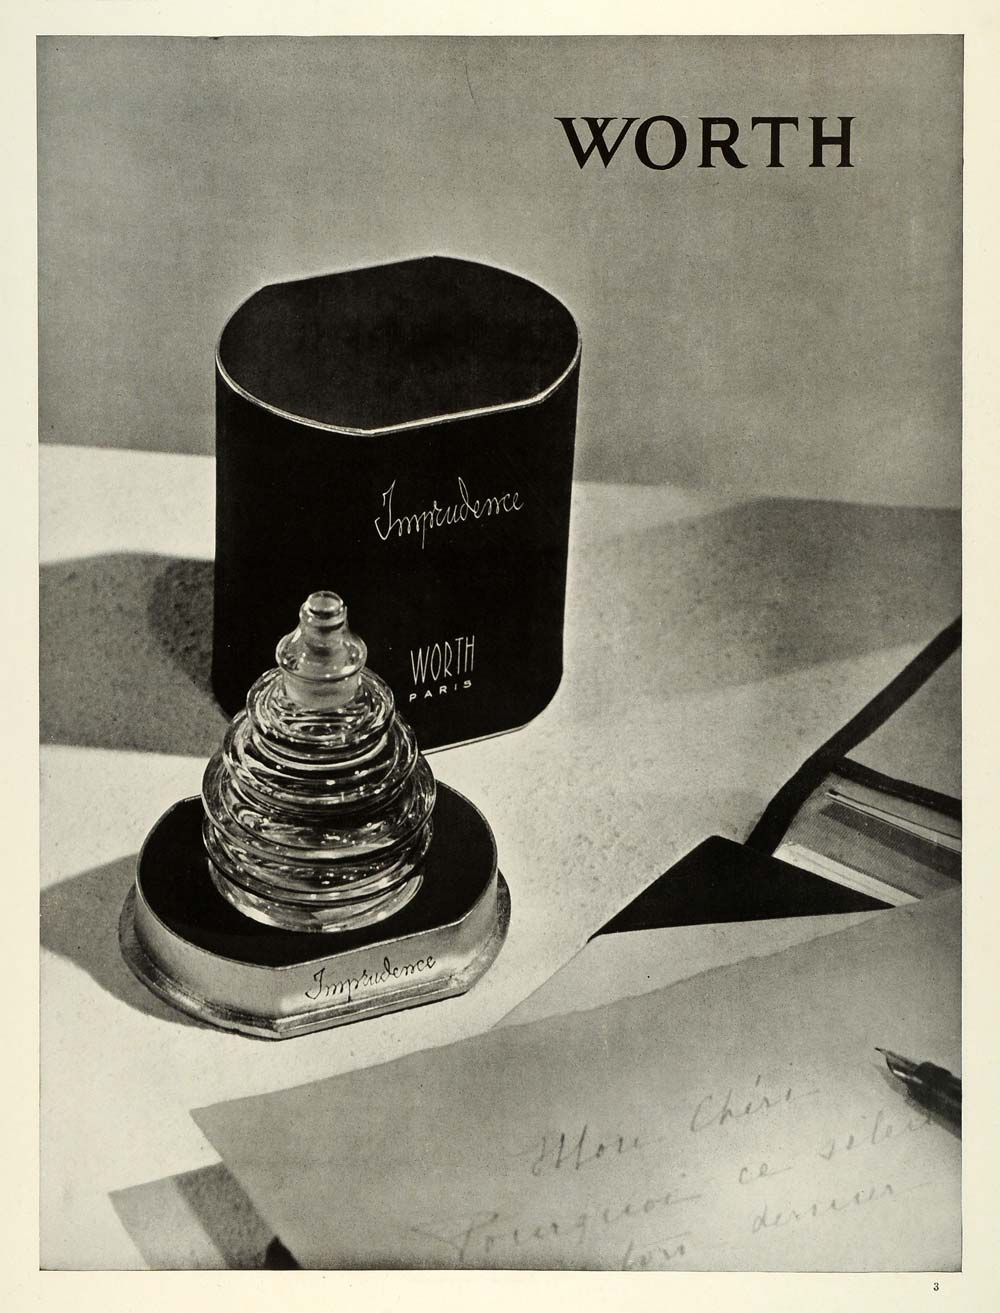 1938 Ad Worth French Perfumes Imprudence Scent Paris France Bottle Beauty ILL5